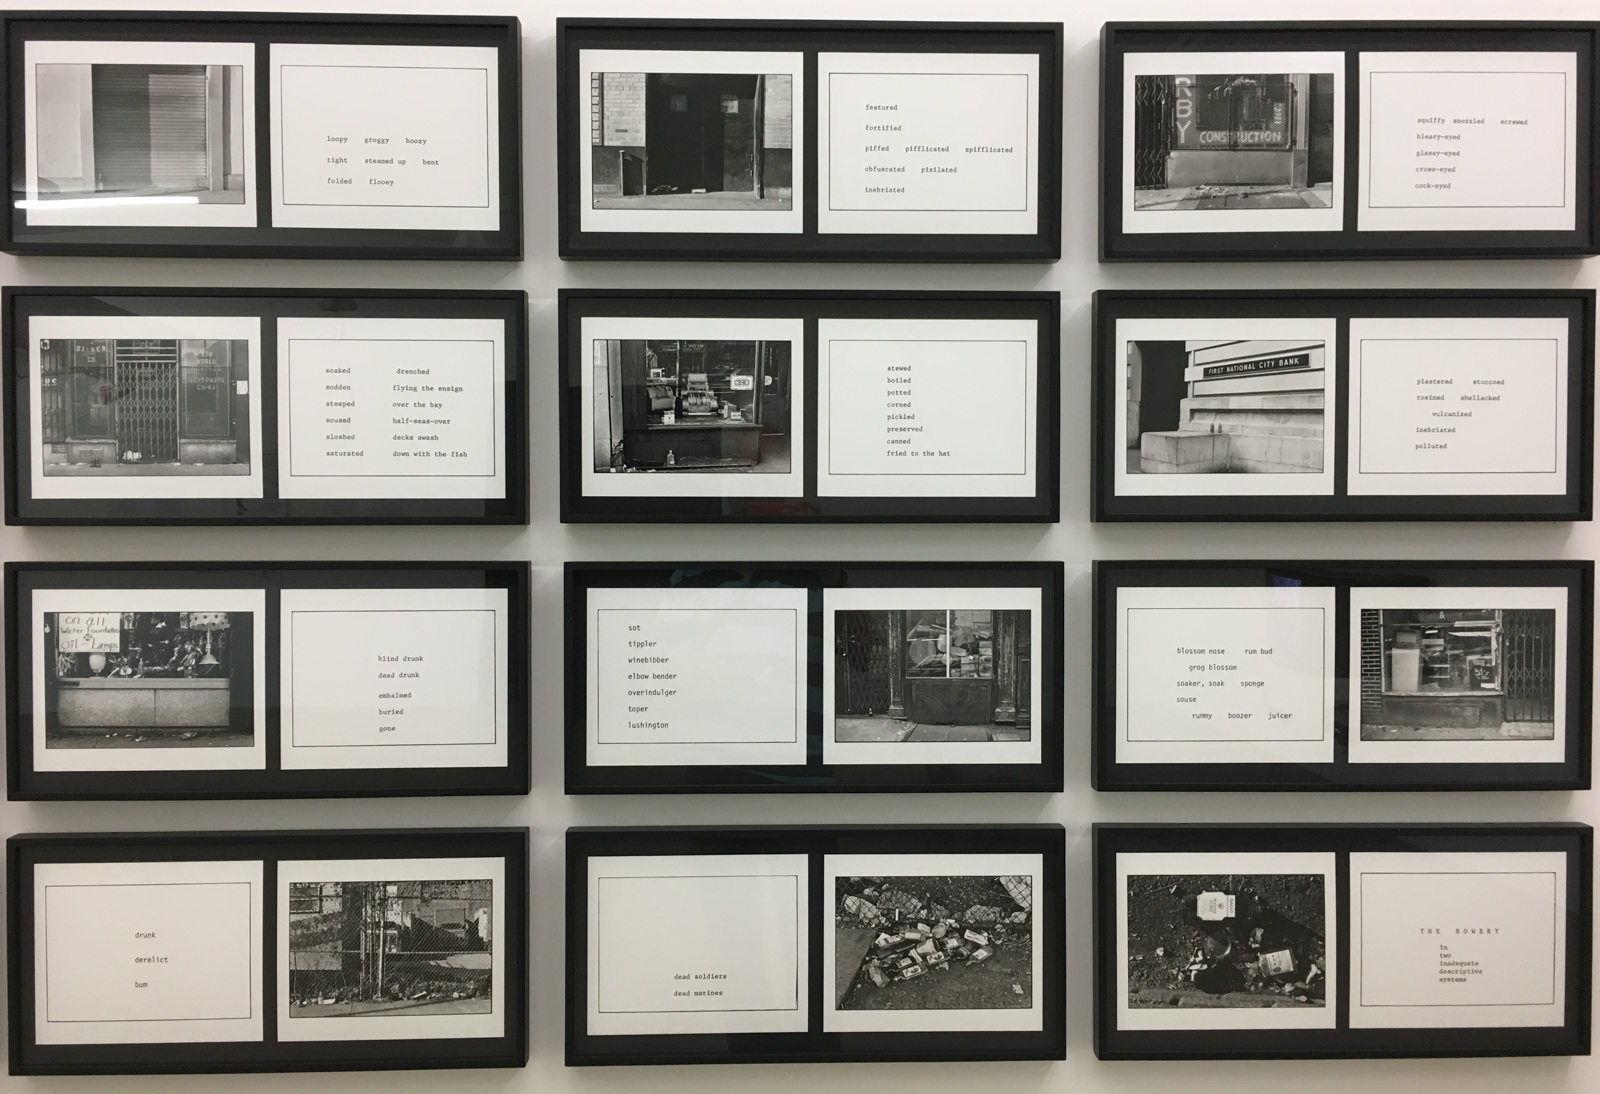 Martha Rosler 'The Bowery in two inadequate descriptive systems' (1974/75), photo: StefanJSchaffeld